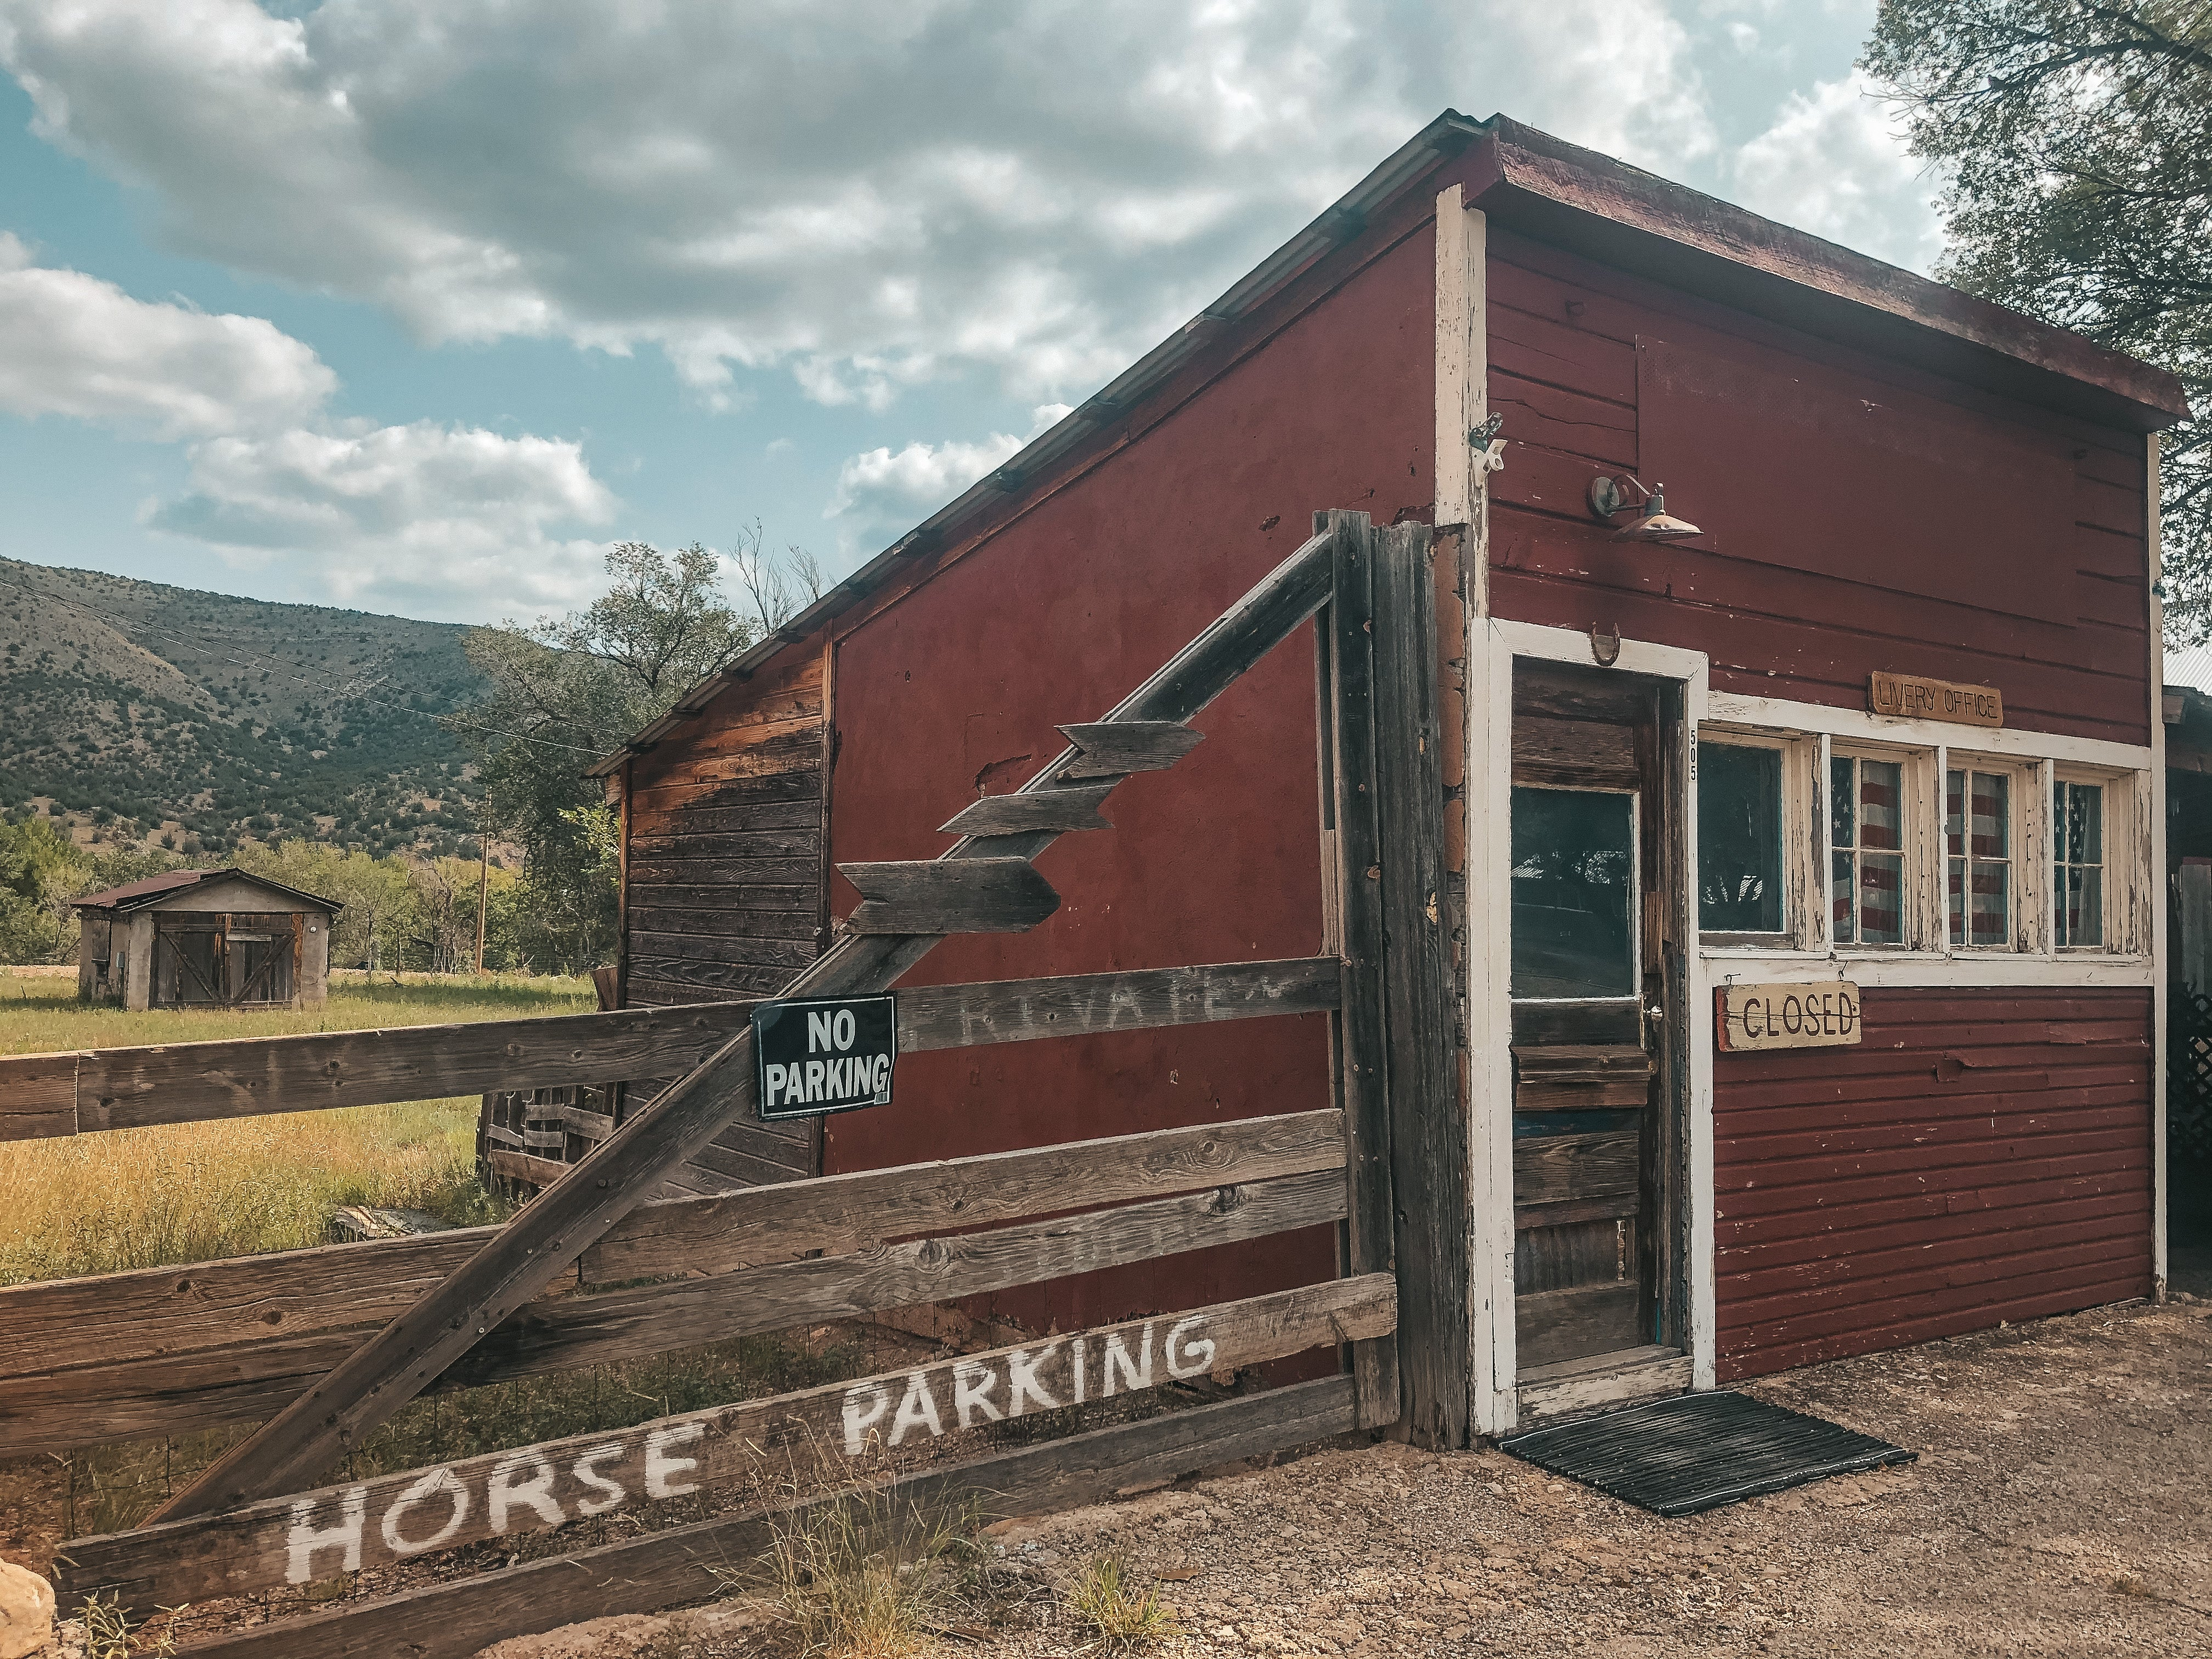 Horse parking in lincoln, NM